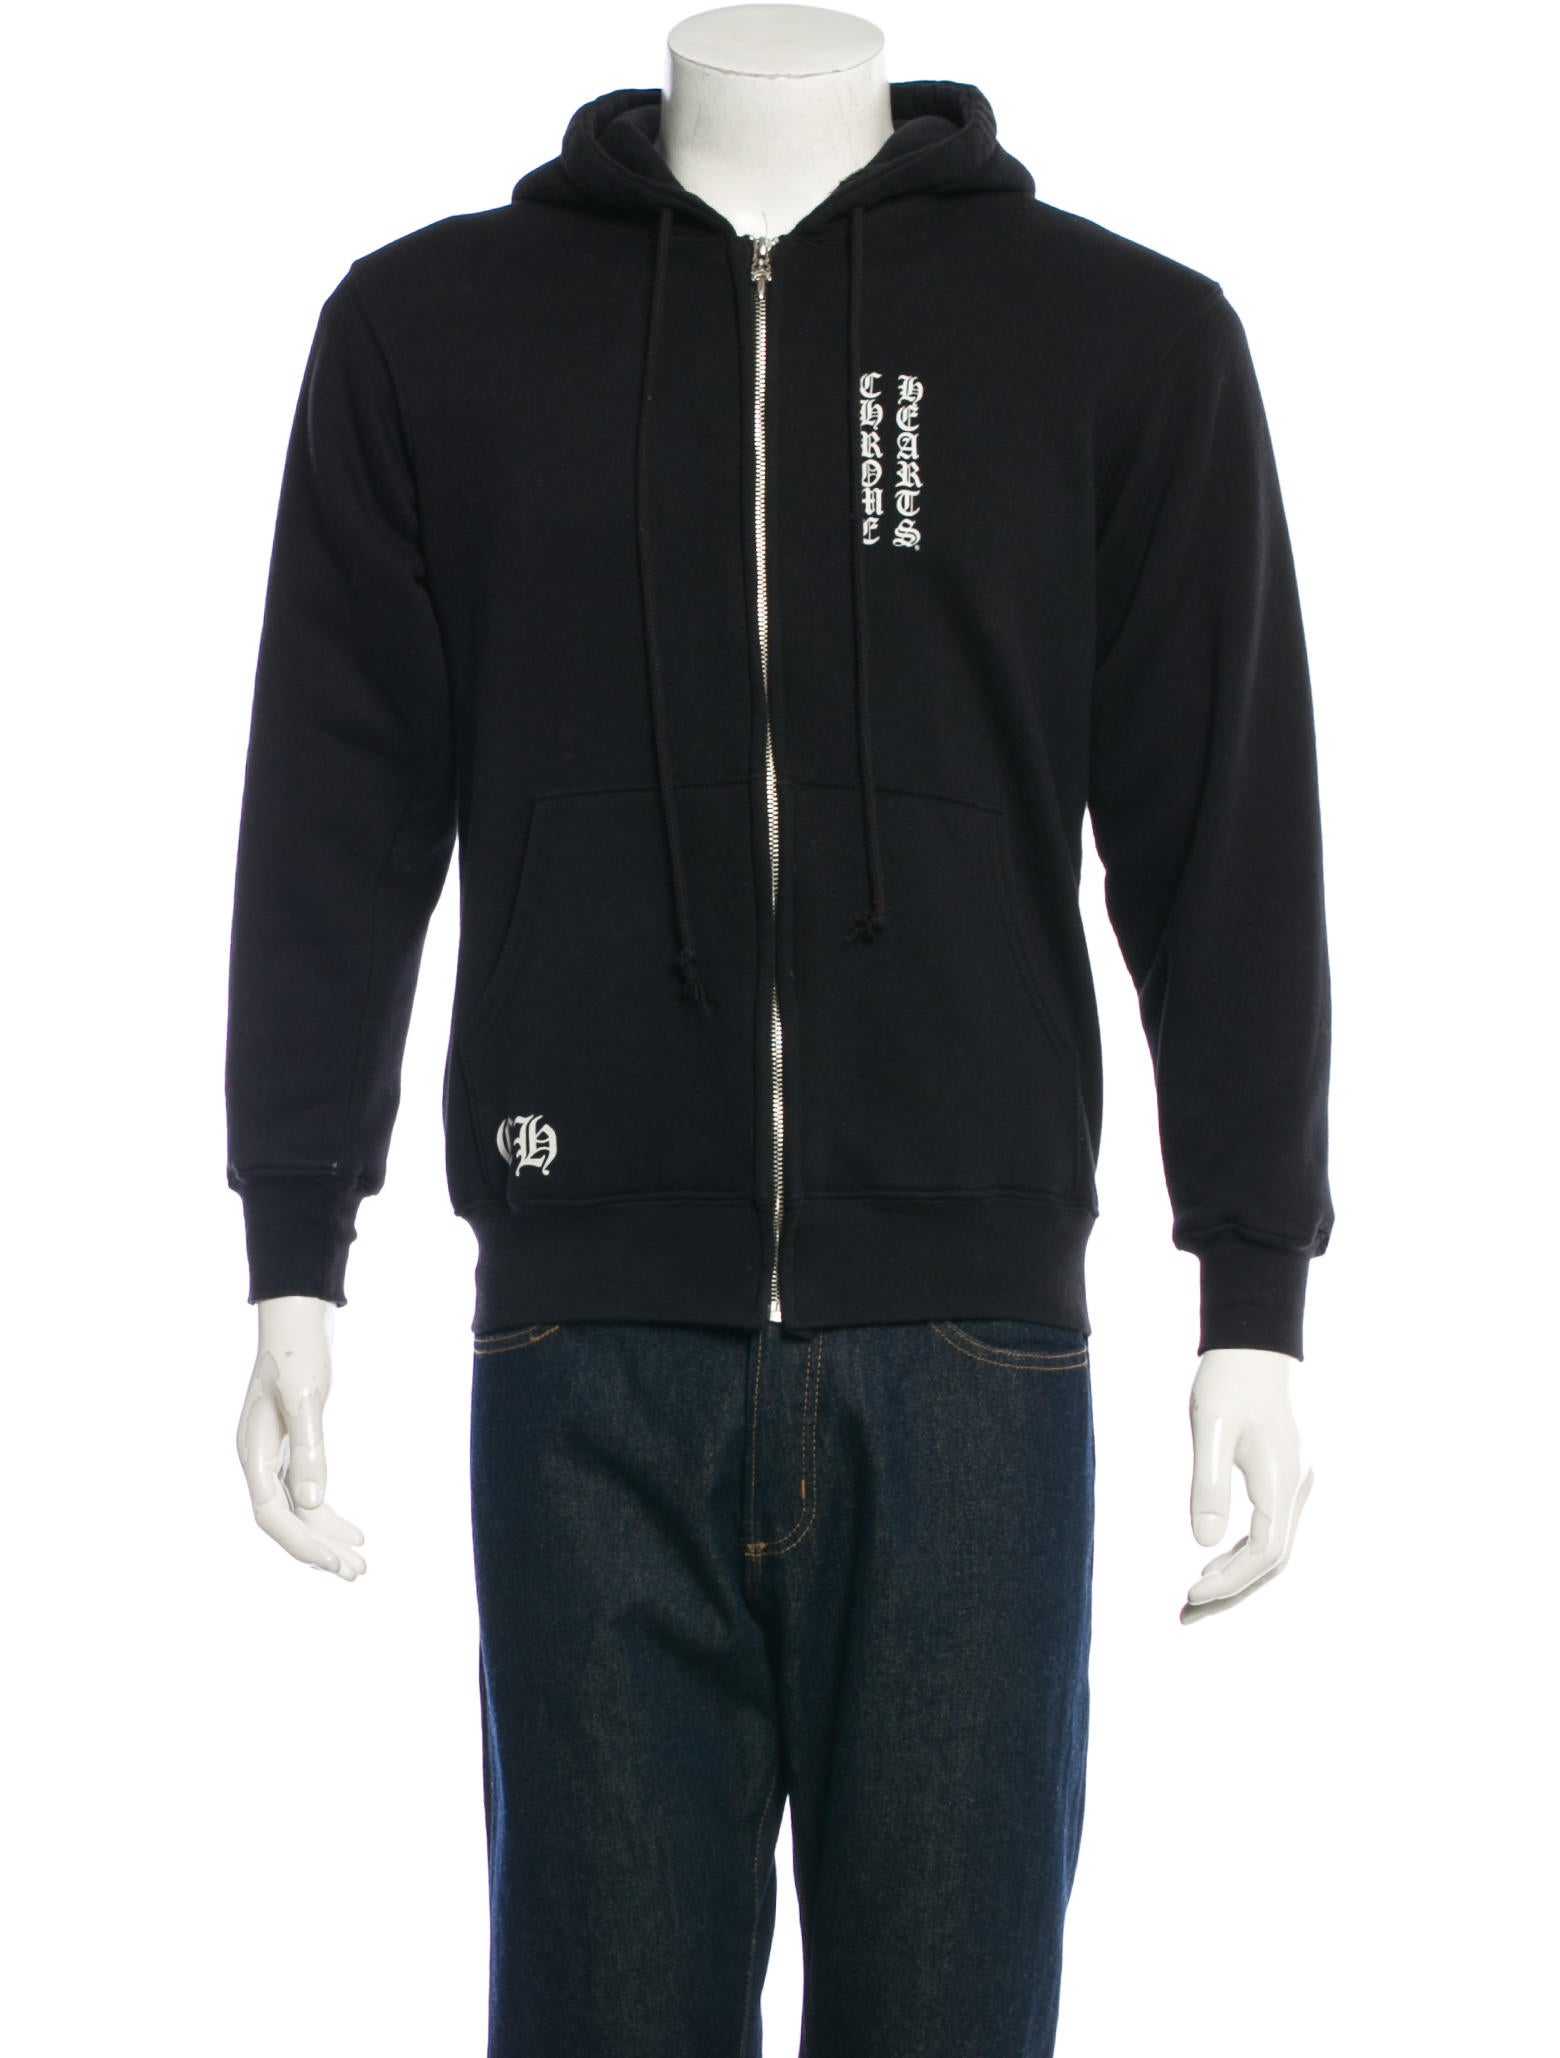 2ceae578696 Chrome Hearts Zip-Up Hoodie - Clothing - CHH20732